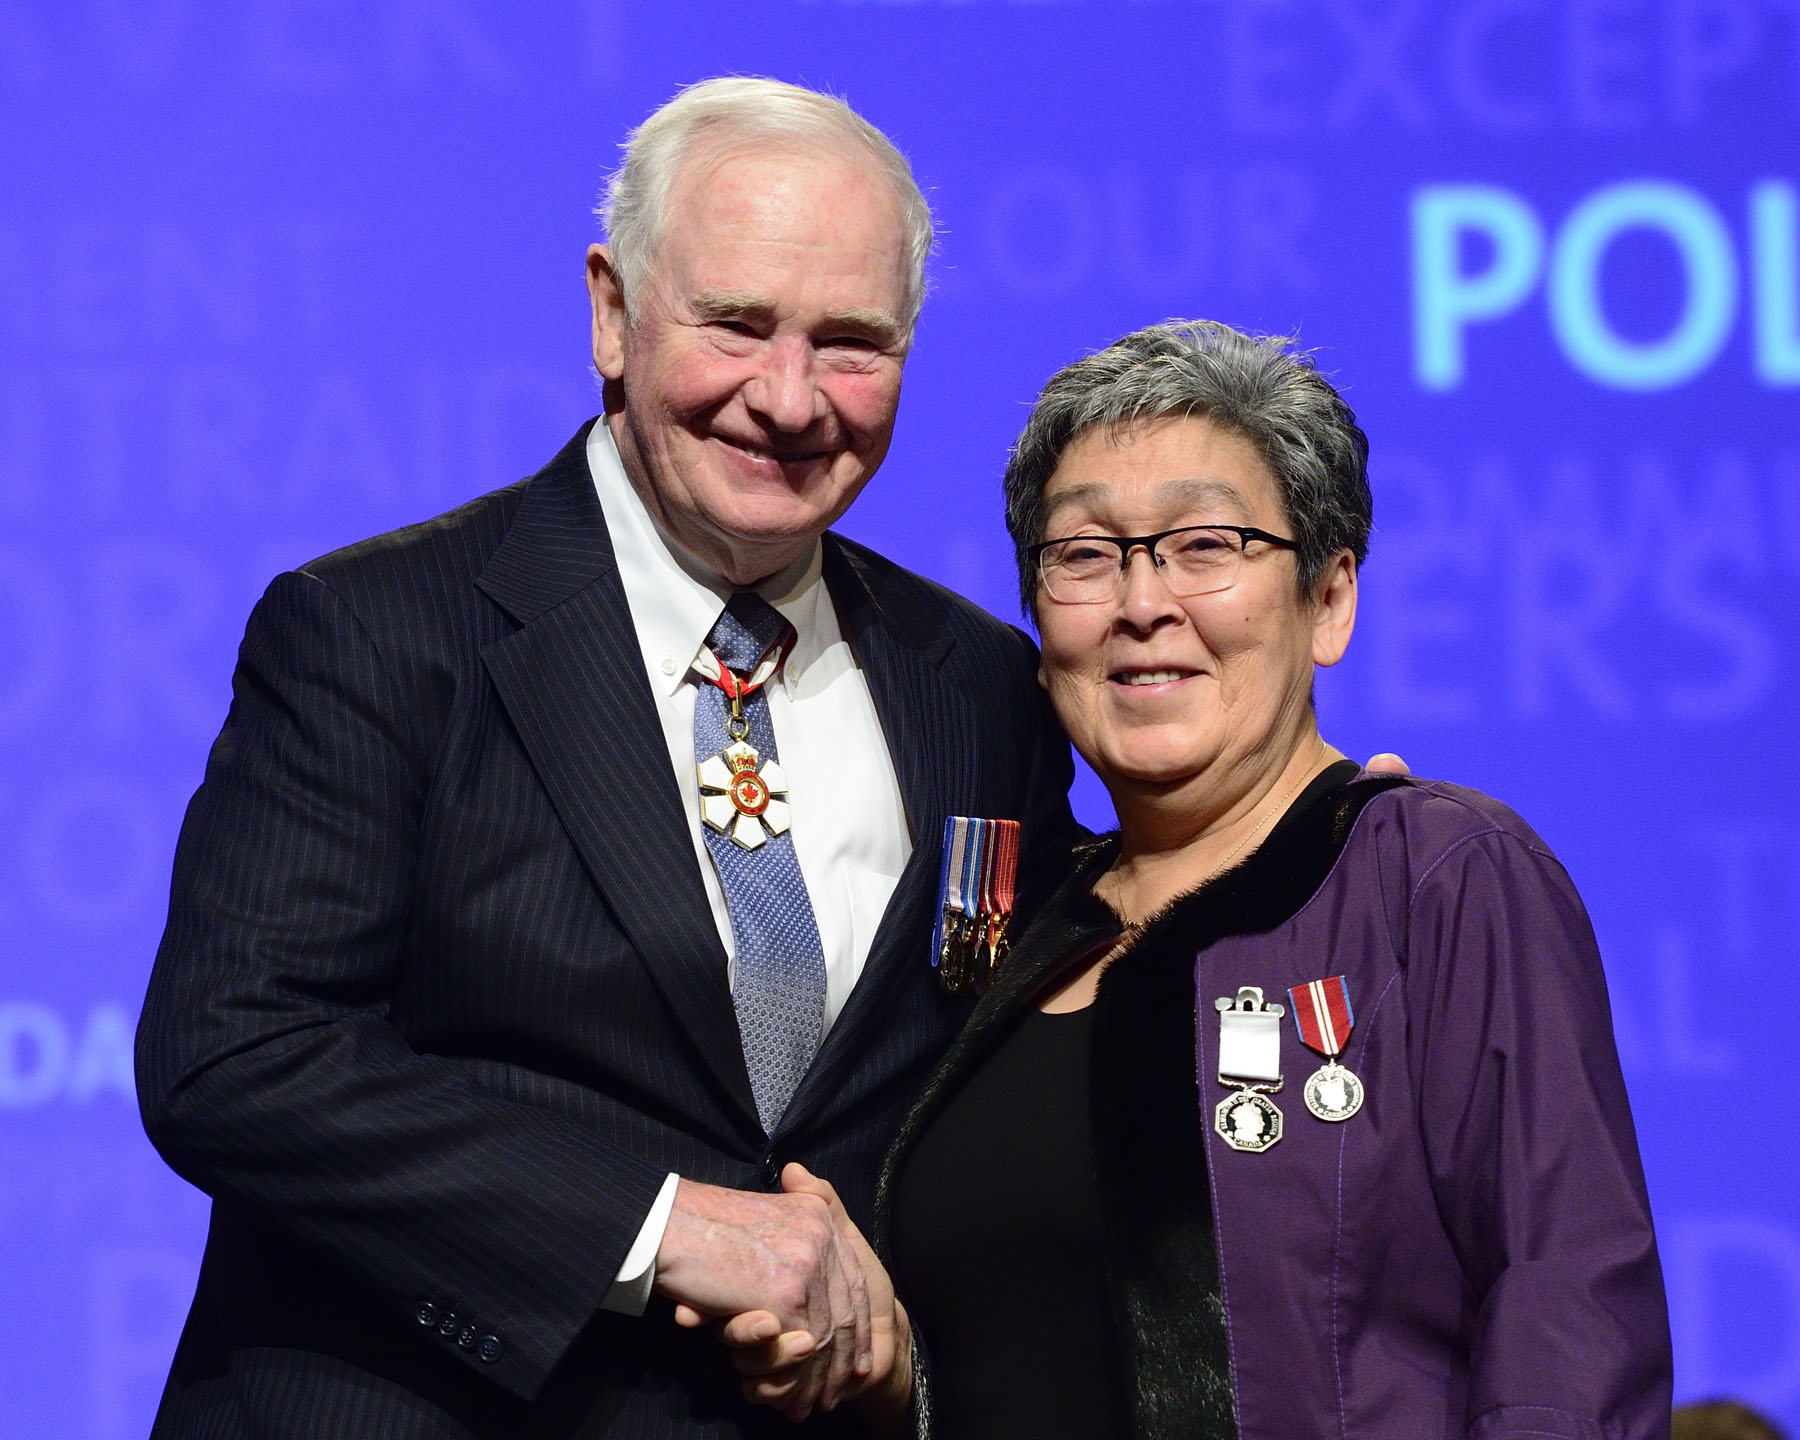 His Excellency presented the Polar Medal to Elisapi Aningmiuq. As a cultural teacher and counsellor, Elisapi Aningmiuq has developed key initiatives at the Tukisigiarvik Wellness Centre including physical health and wellness programs, food programs, suicide intervention and counselling sessions. She has been a strong advocate for rebuilding Inuit culture and identity, and has accordingly dedicated herself to preserving traditional skills and knowledge.